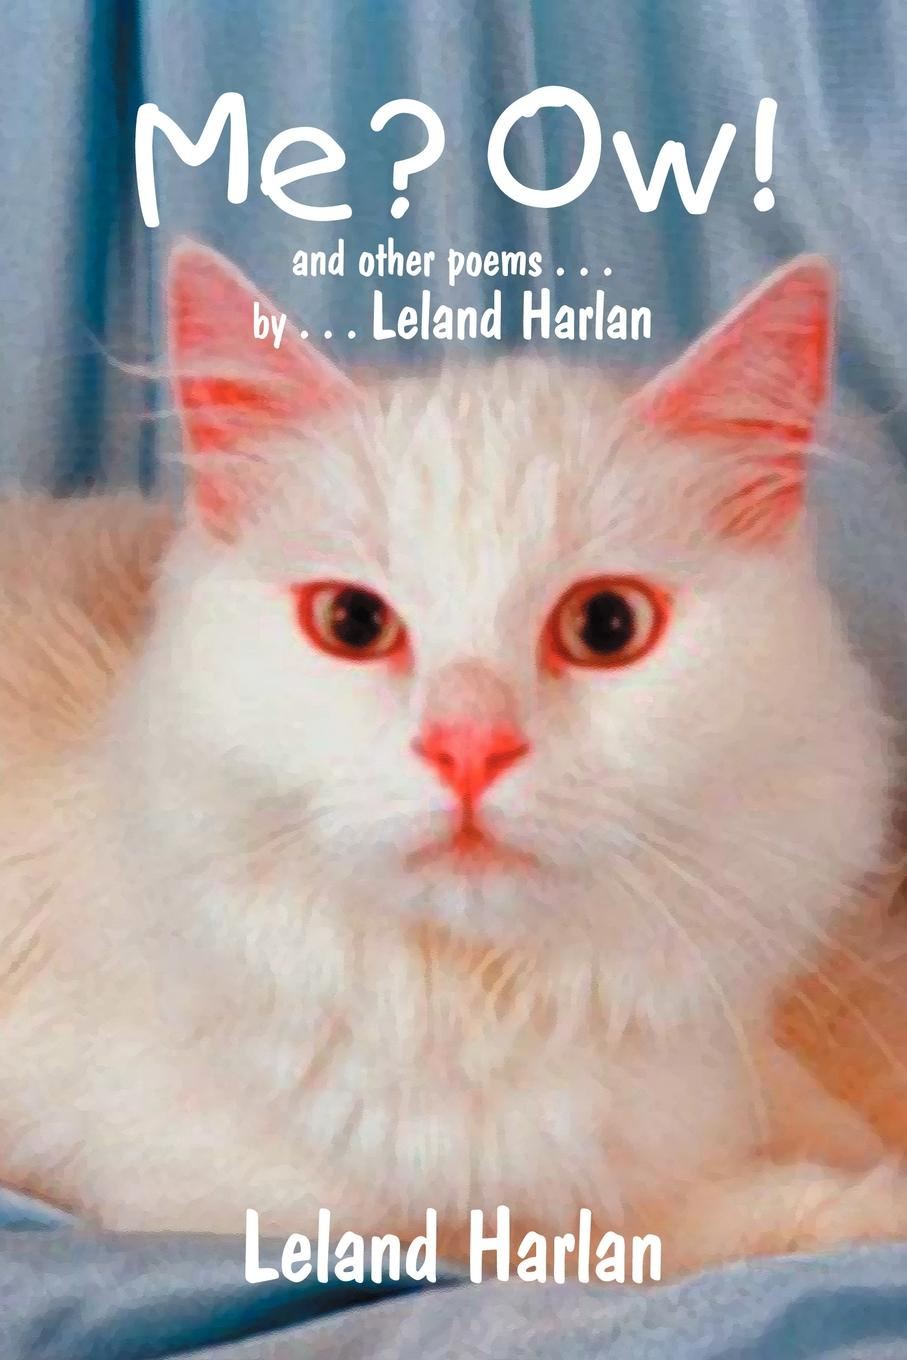 Me? Ow! and other poems . . . by . . . Leland Harlan. Leland Harlan